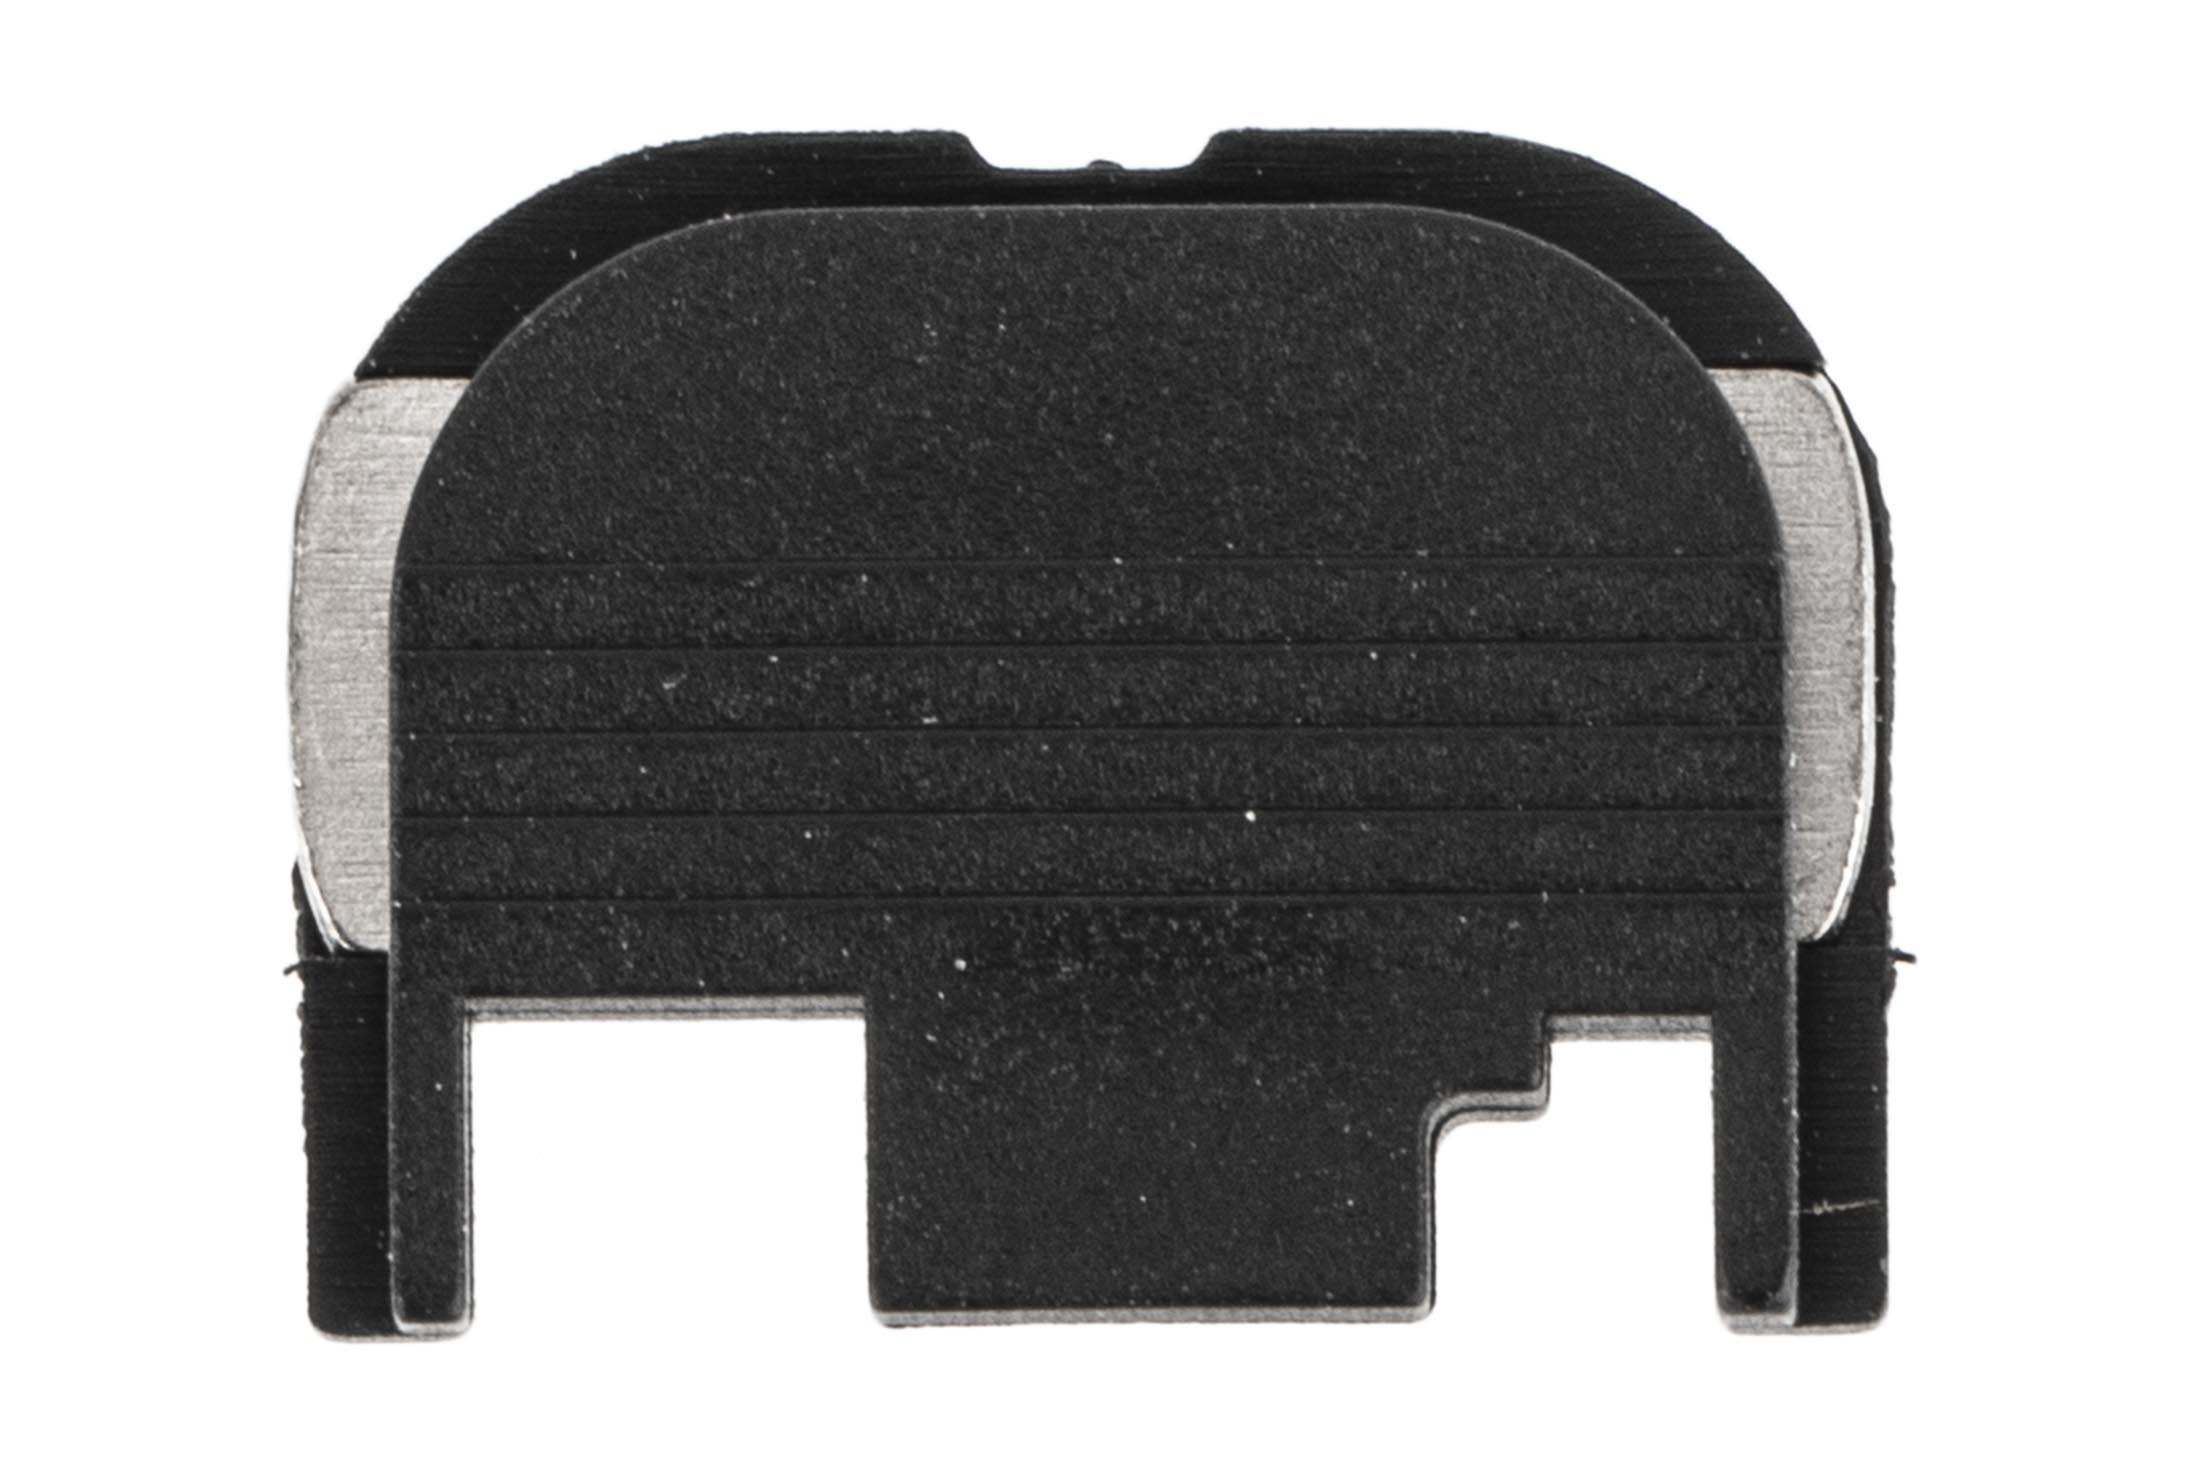 Glock OEM slide cover plate is a Glock factory original part for all Gen 1 through Gen4 glocks. Not compatible with G42/43